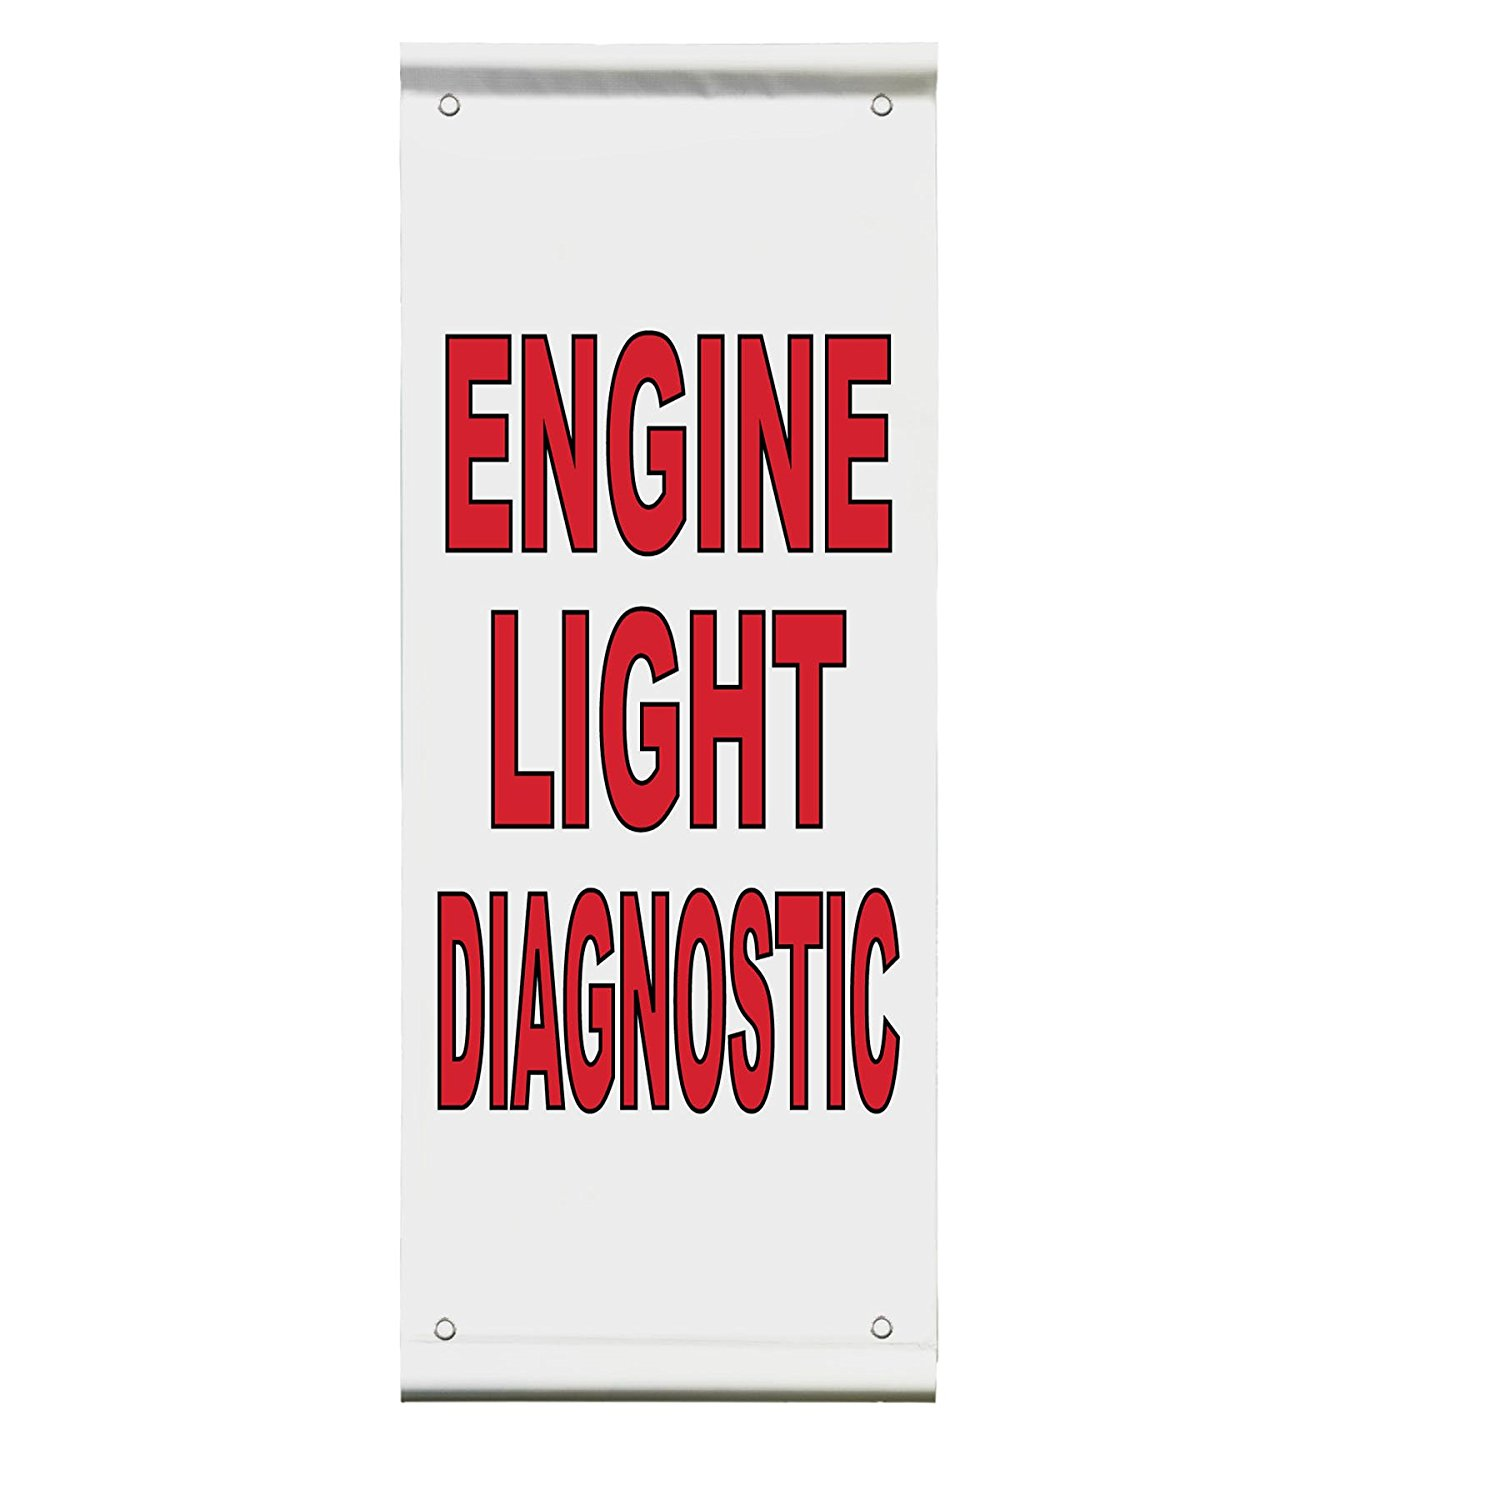 Engine Light Diagnostic Auto Body Shop Car Double Sided Pole Banner Sign 36 in x 72 in